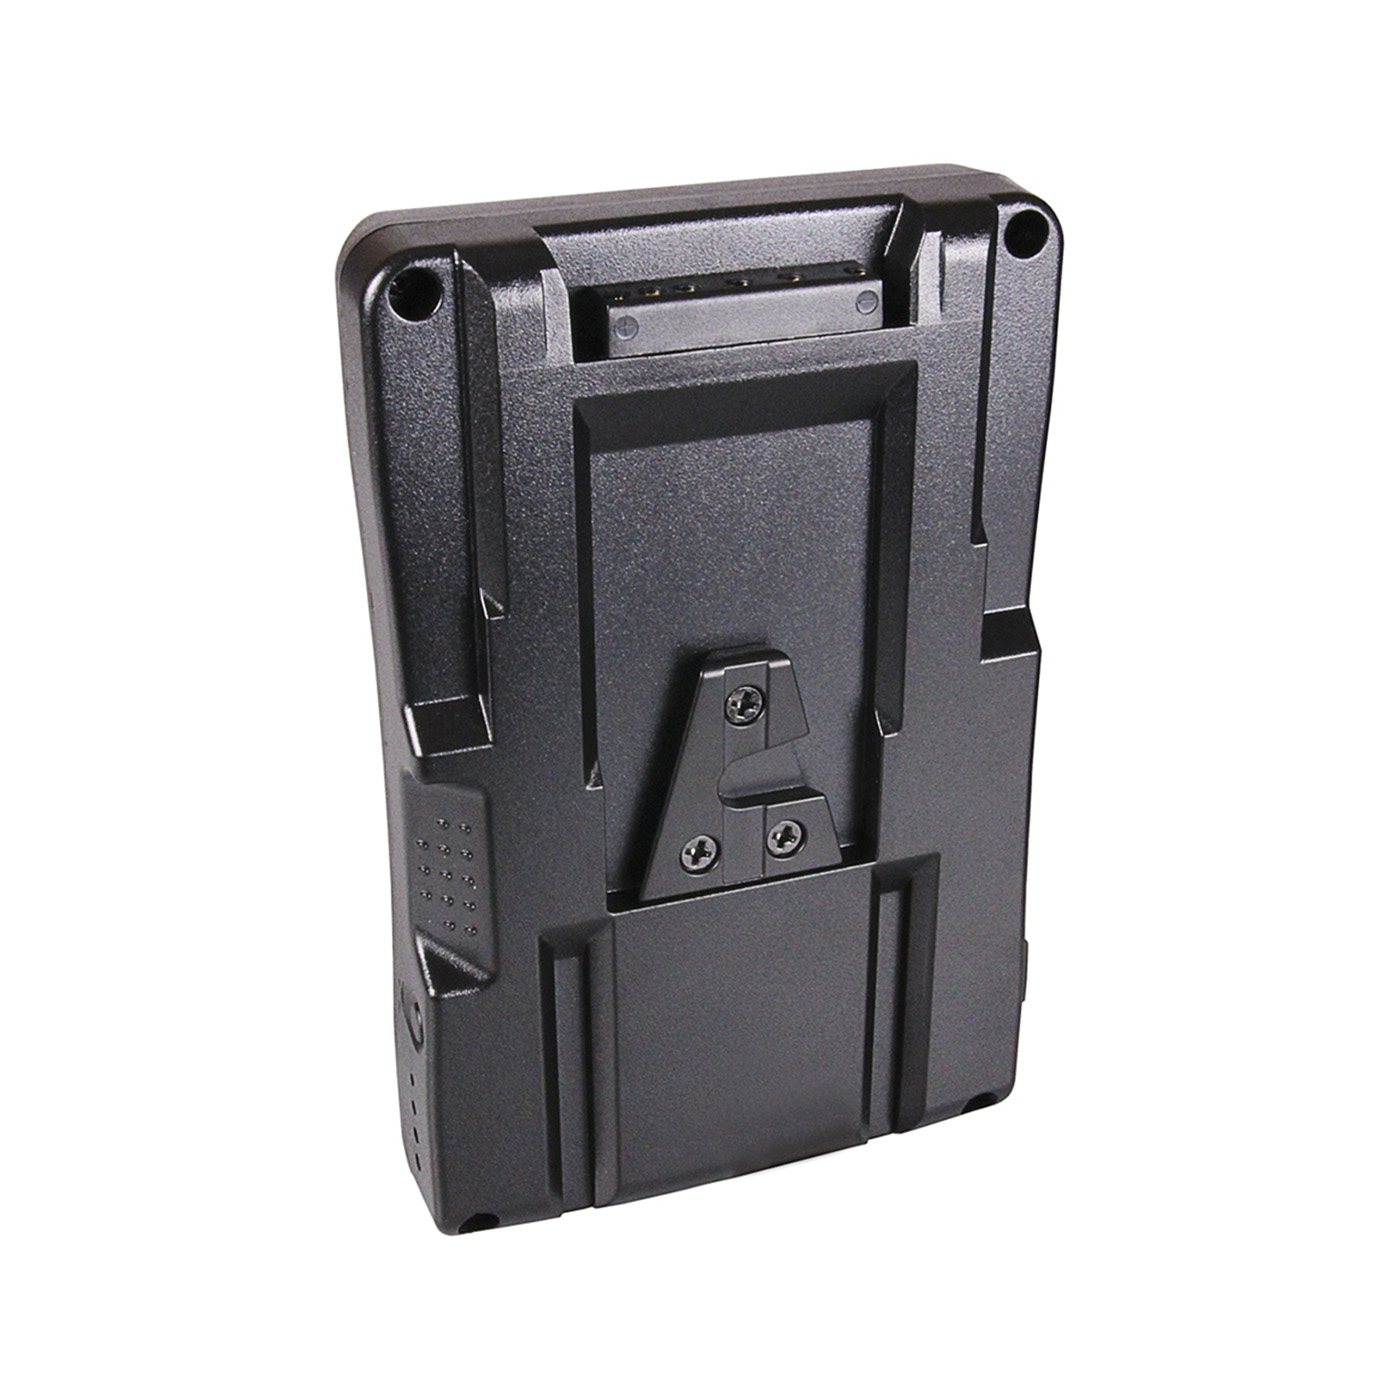 VLOCK_BATTERY_95Wh_PVESHOP_2_N 150x150